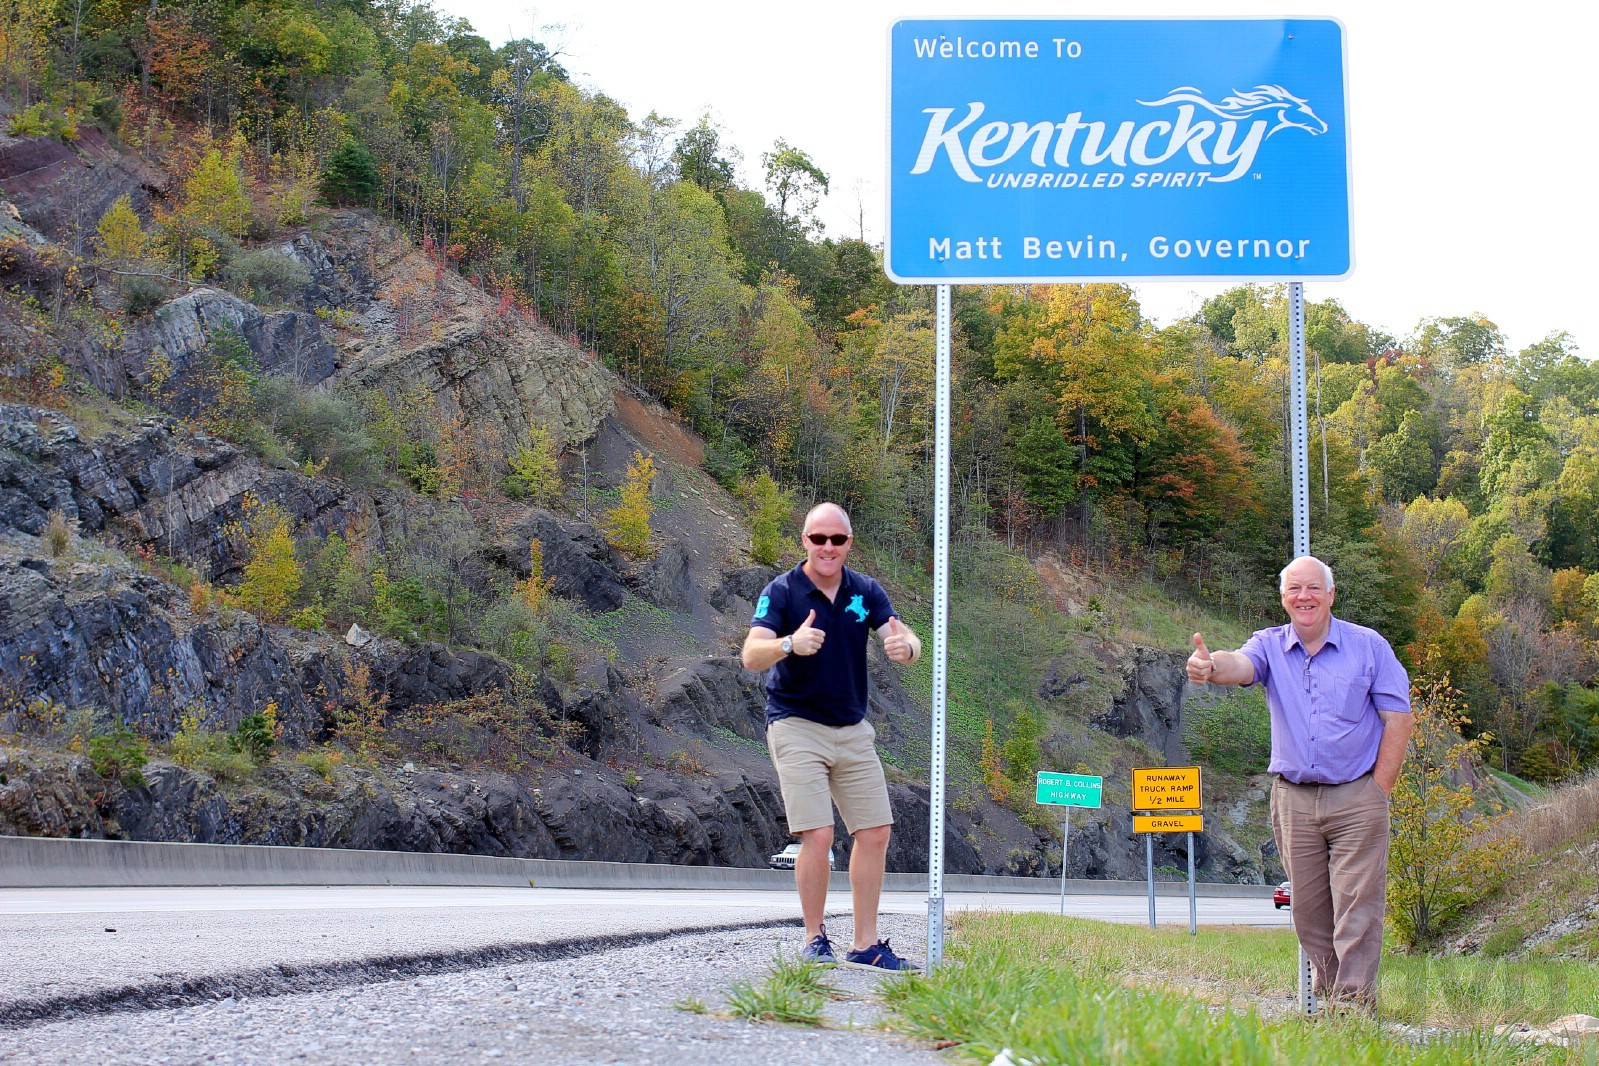 On the Virginia/Kentucky State Line, US 23. October 18, 2017.